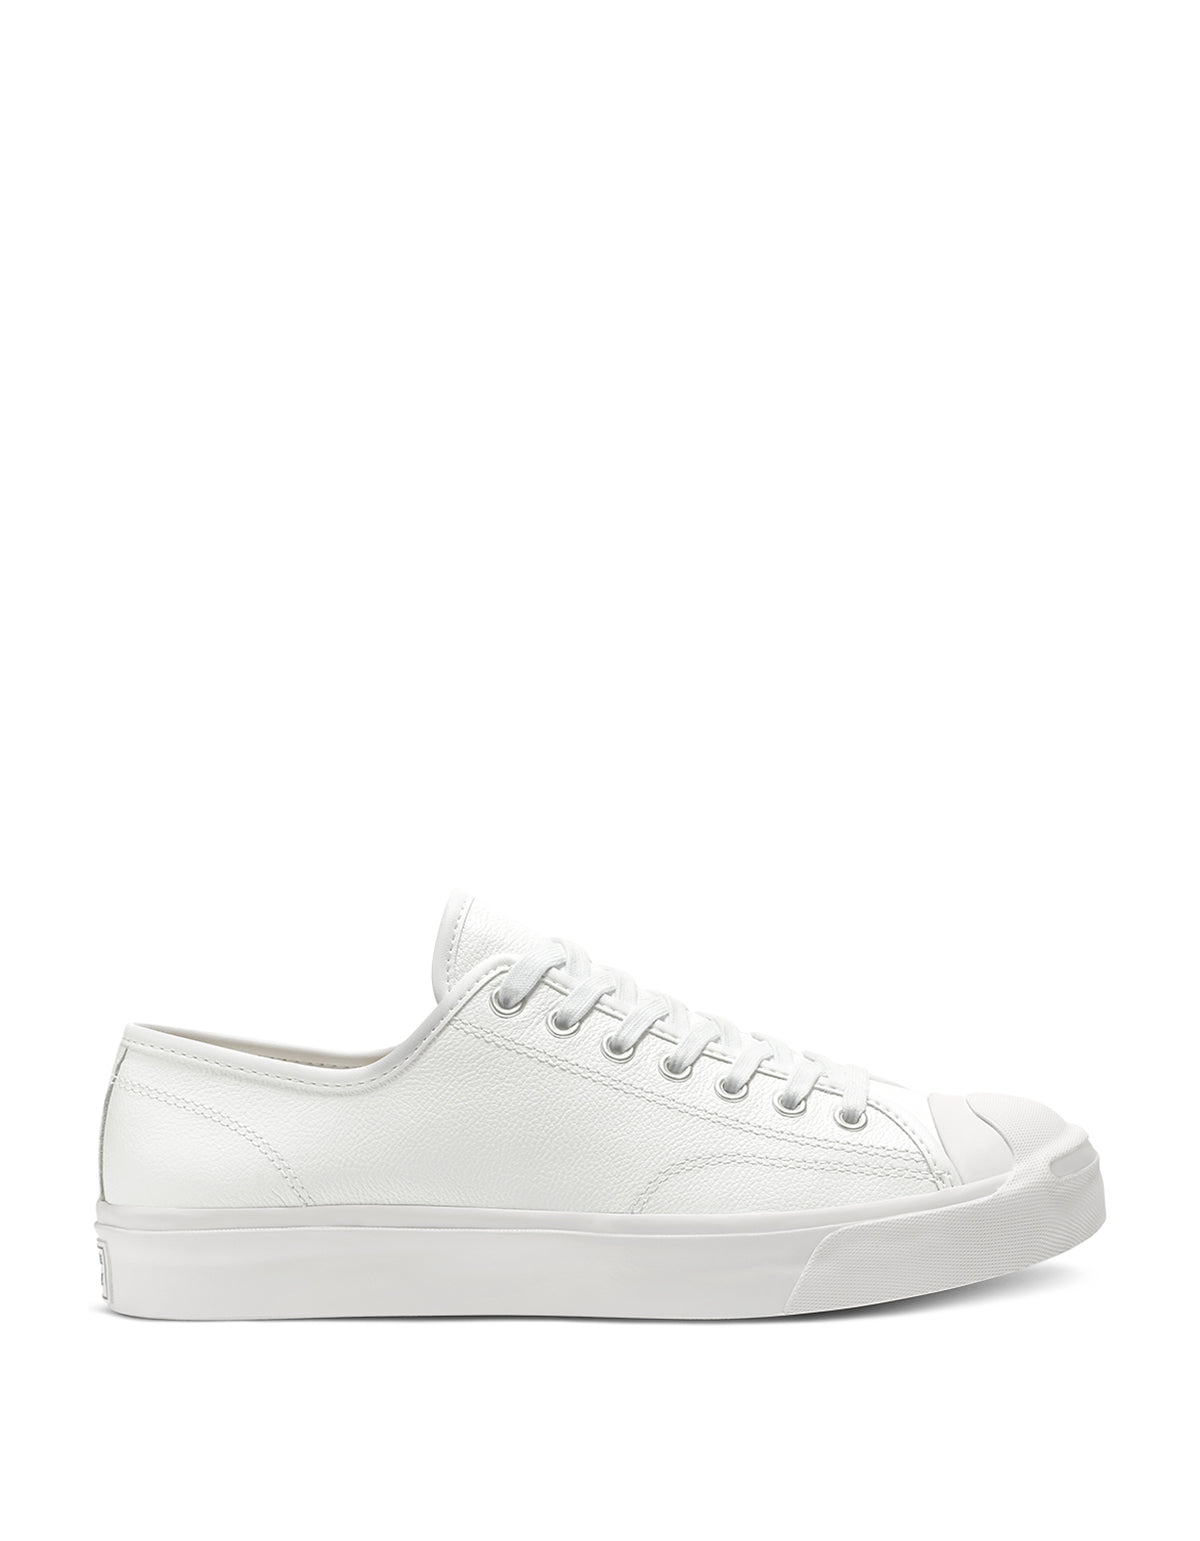 Converse Men's Jack Purcell Foundational Leather - Low Top White